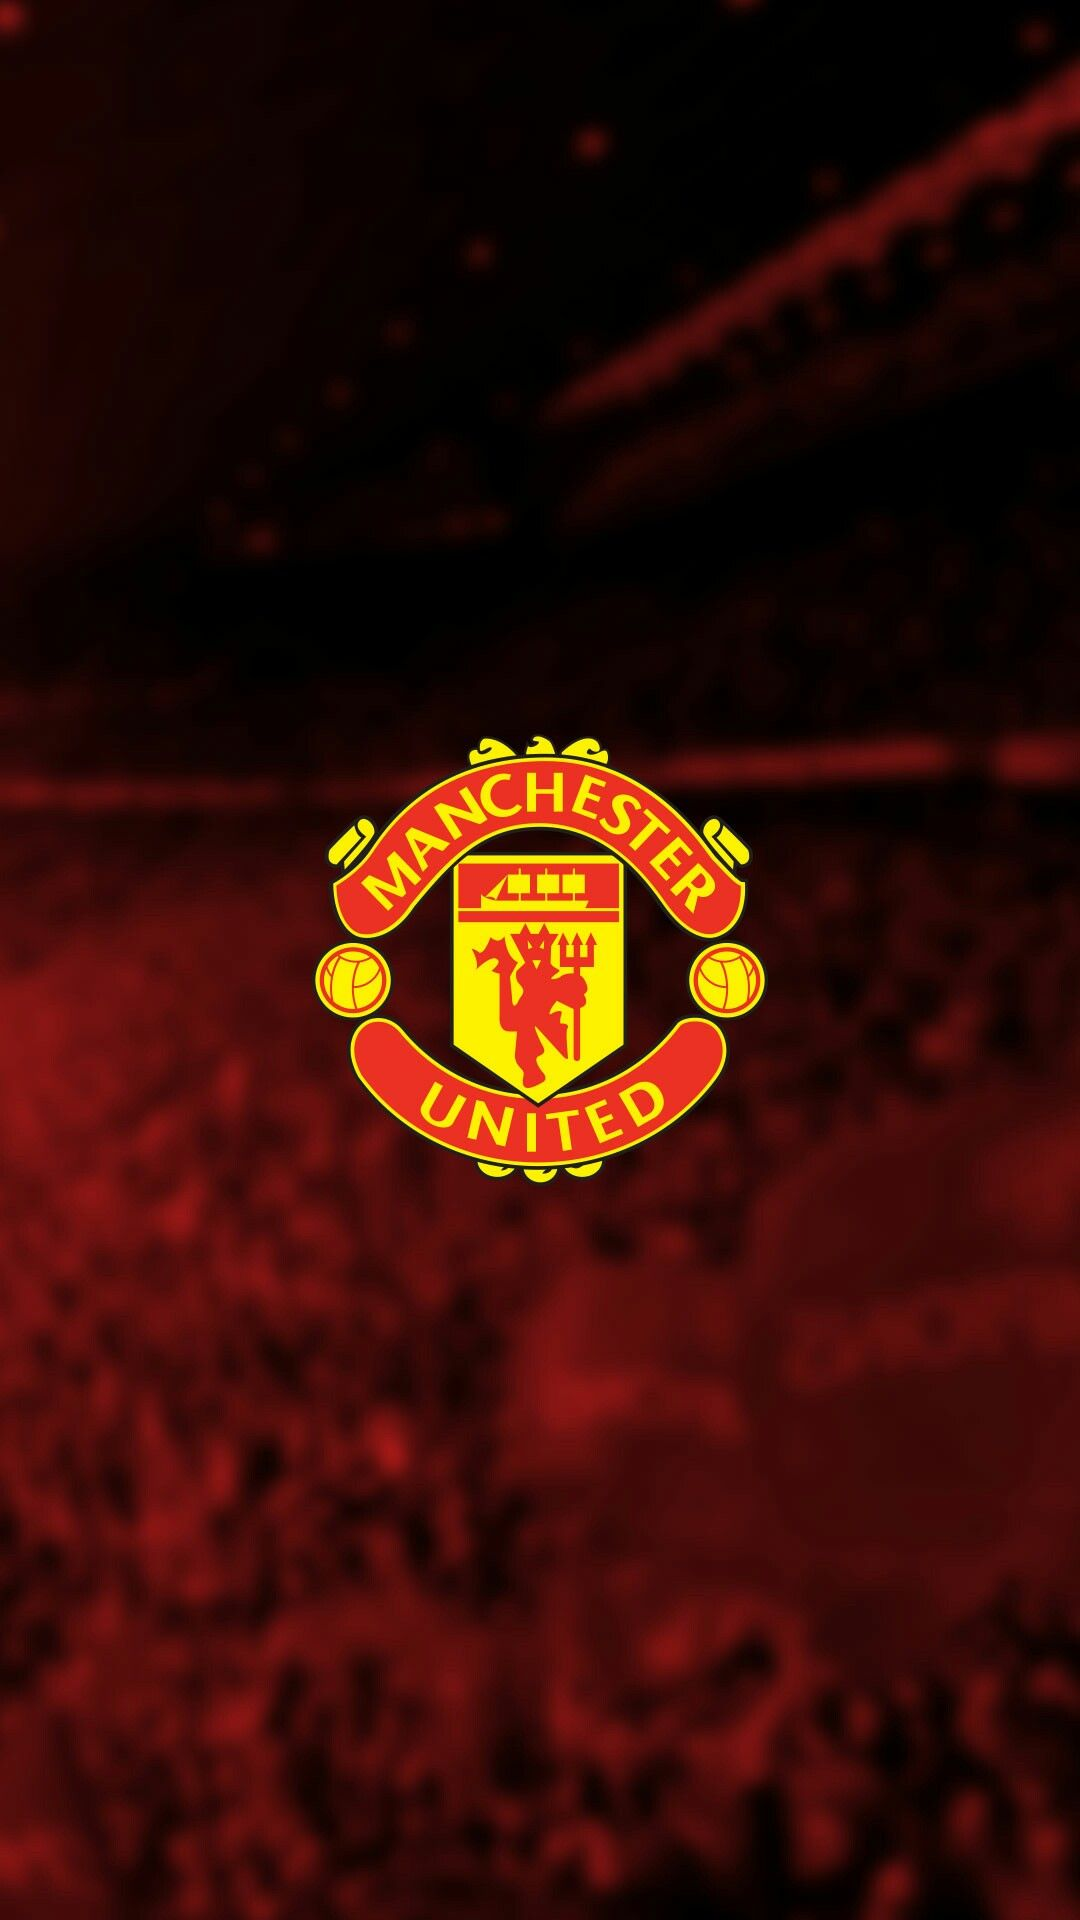 Manchester United Football Club Wallpaper Football Wallpaper Hd Manchester United Wallpaper Manchester United Logo Manchester United